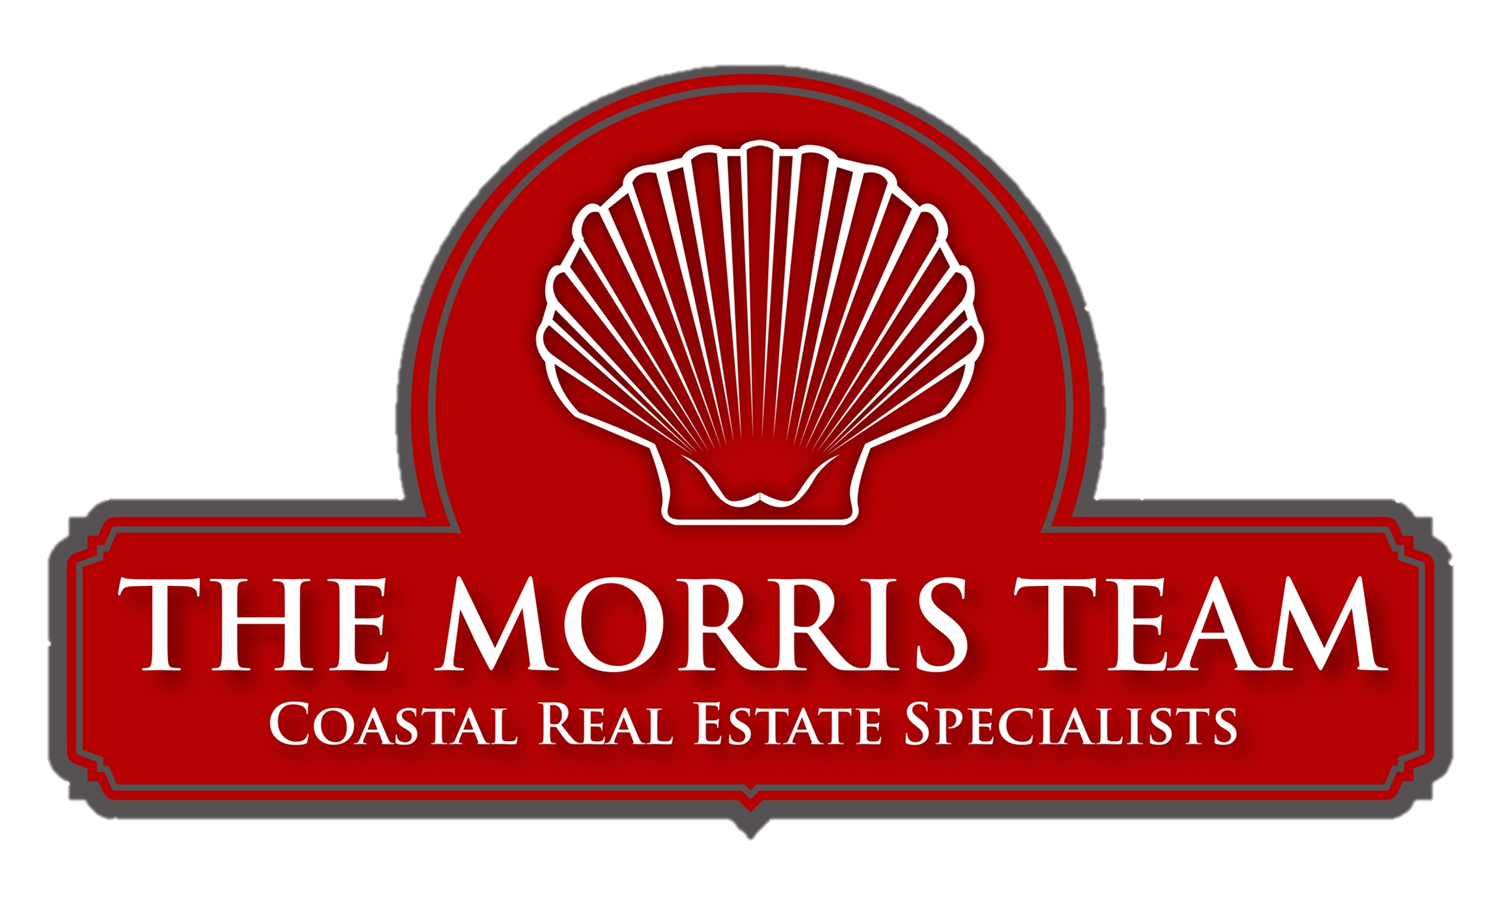 The Morris Team logo